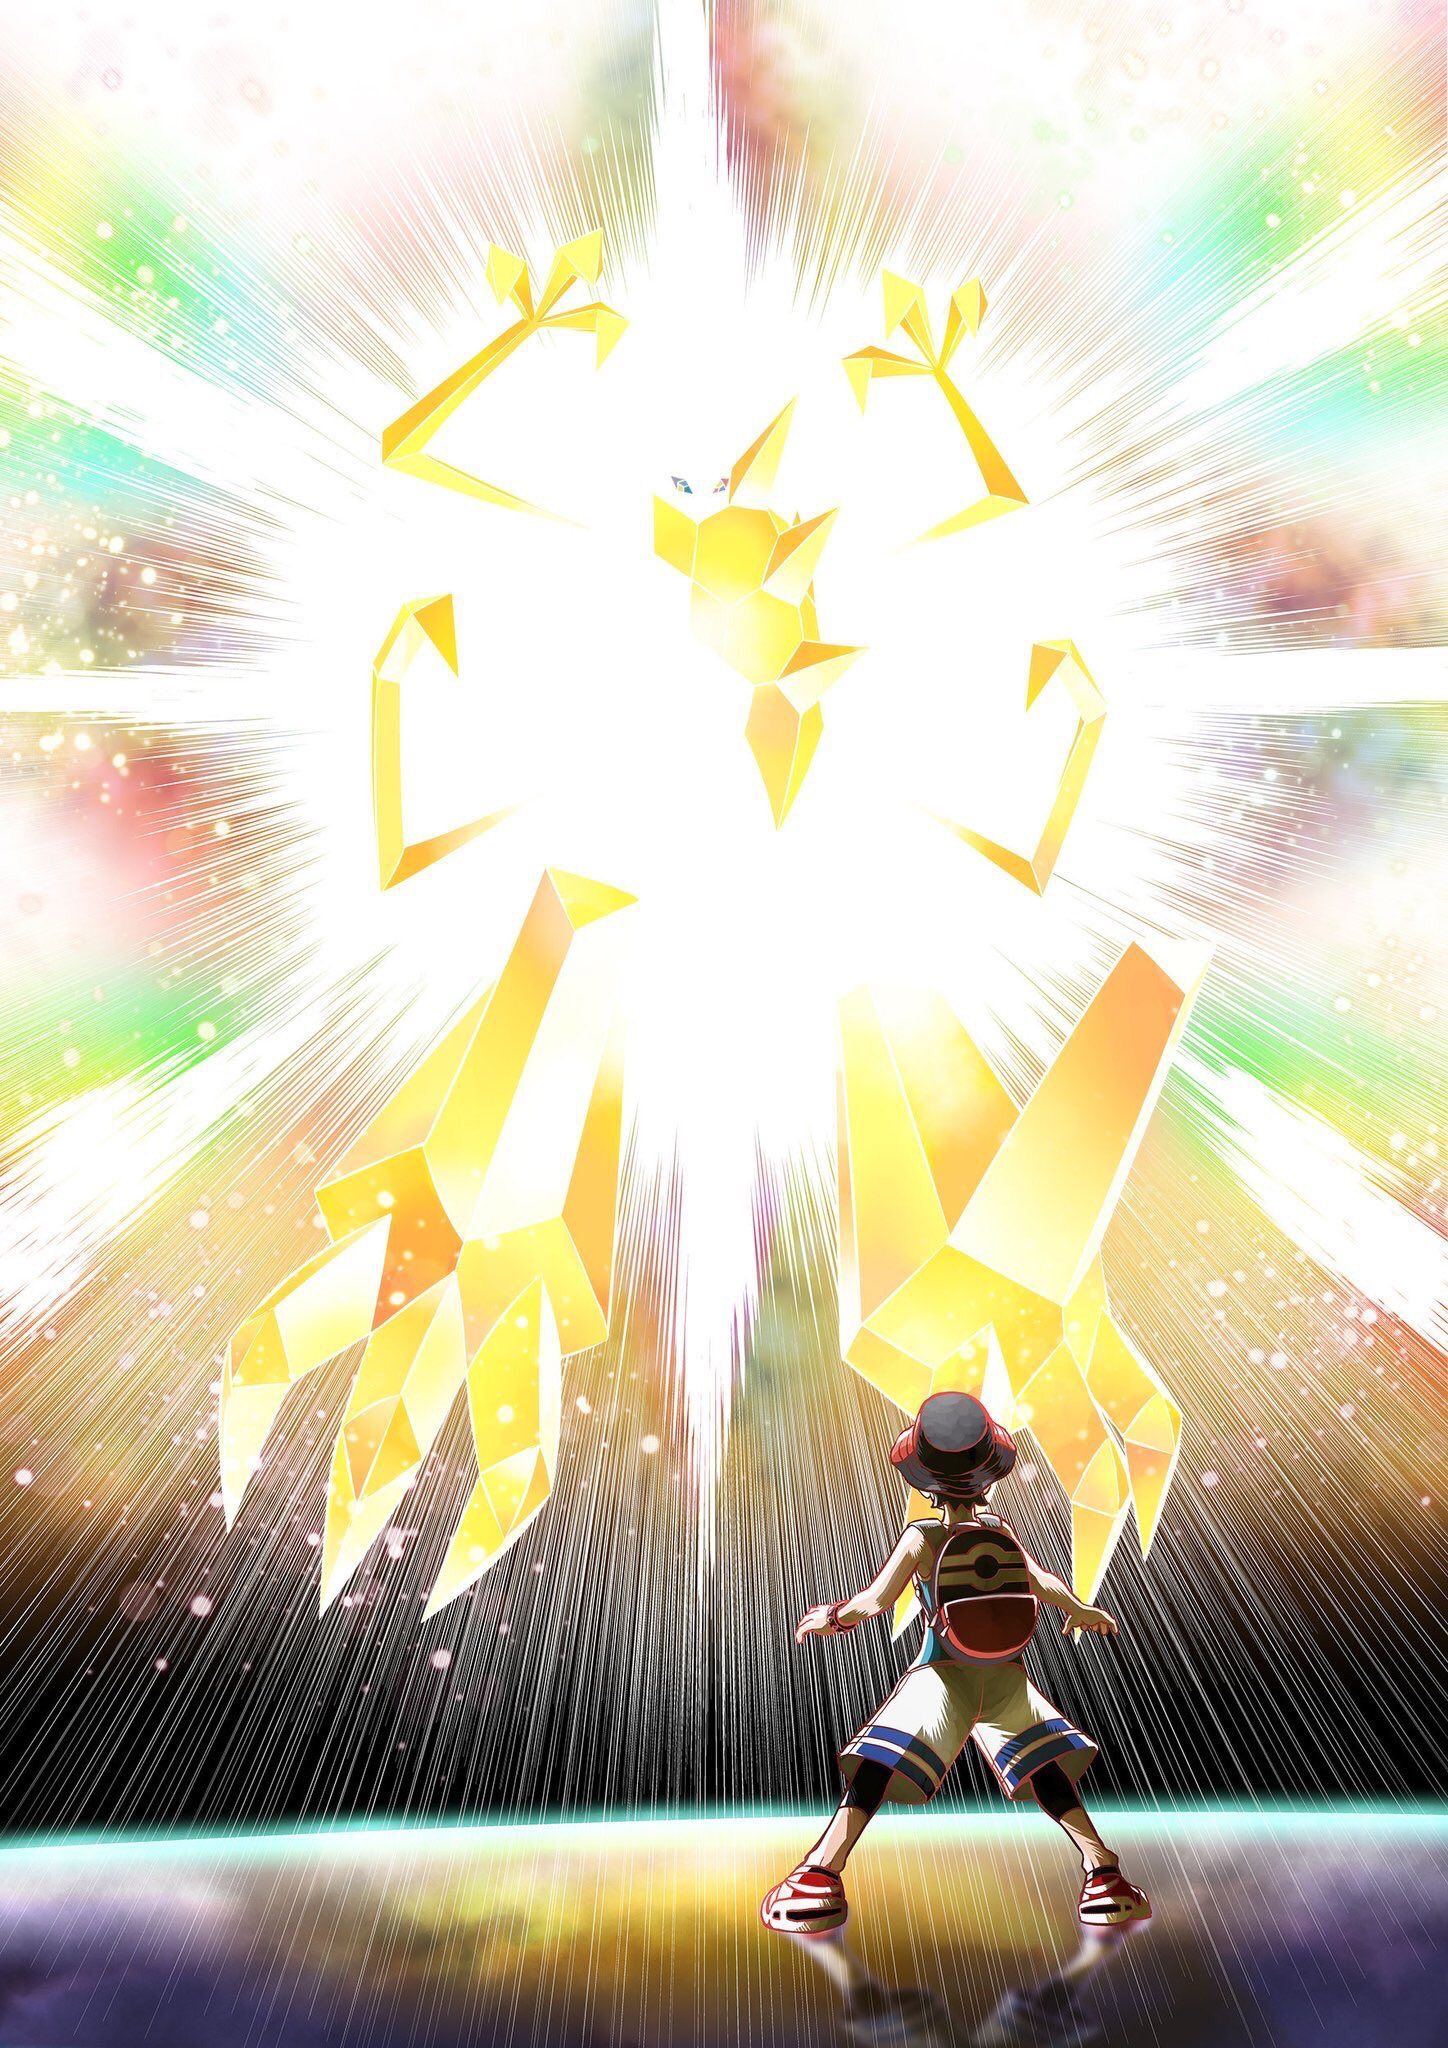 Ultra Necrozma Despite Being Too Bright And Hard To See This Is An Official Design Pokemon Pokemon Pictures Pokemon Alola